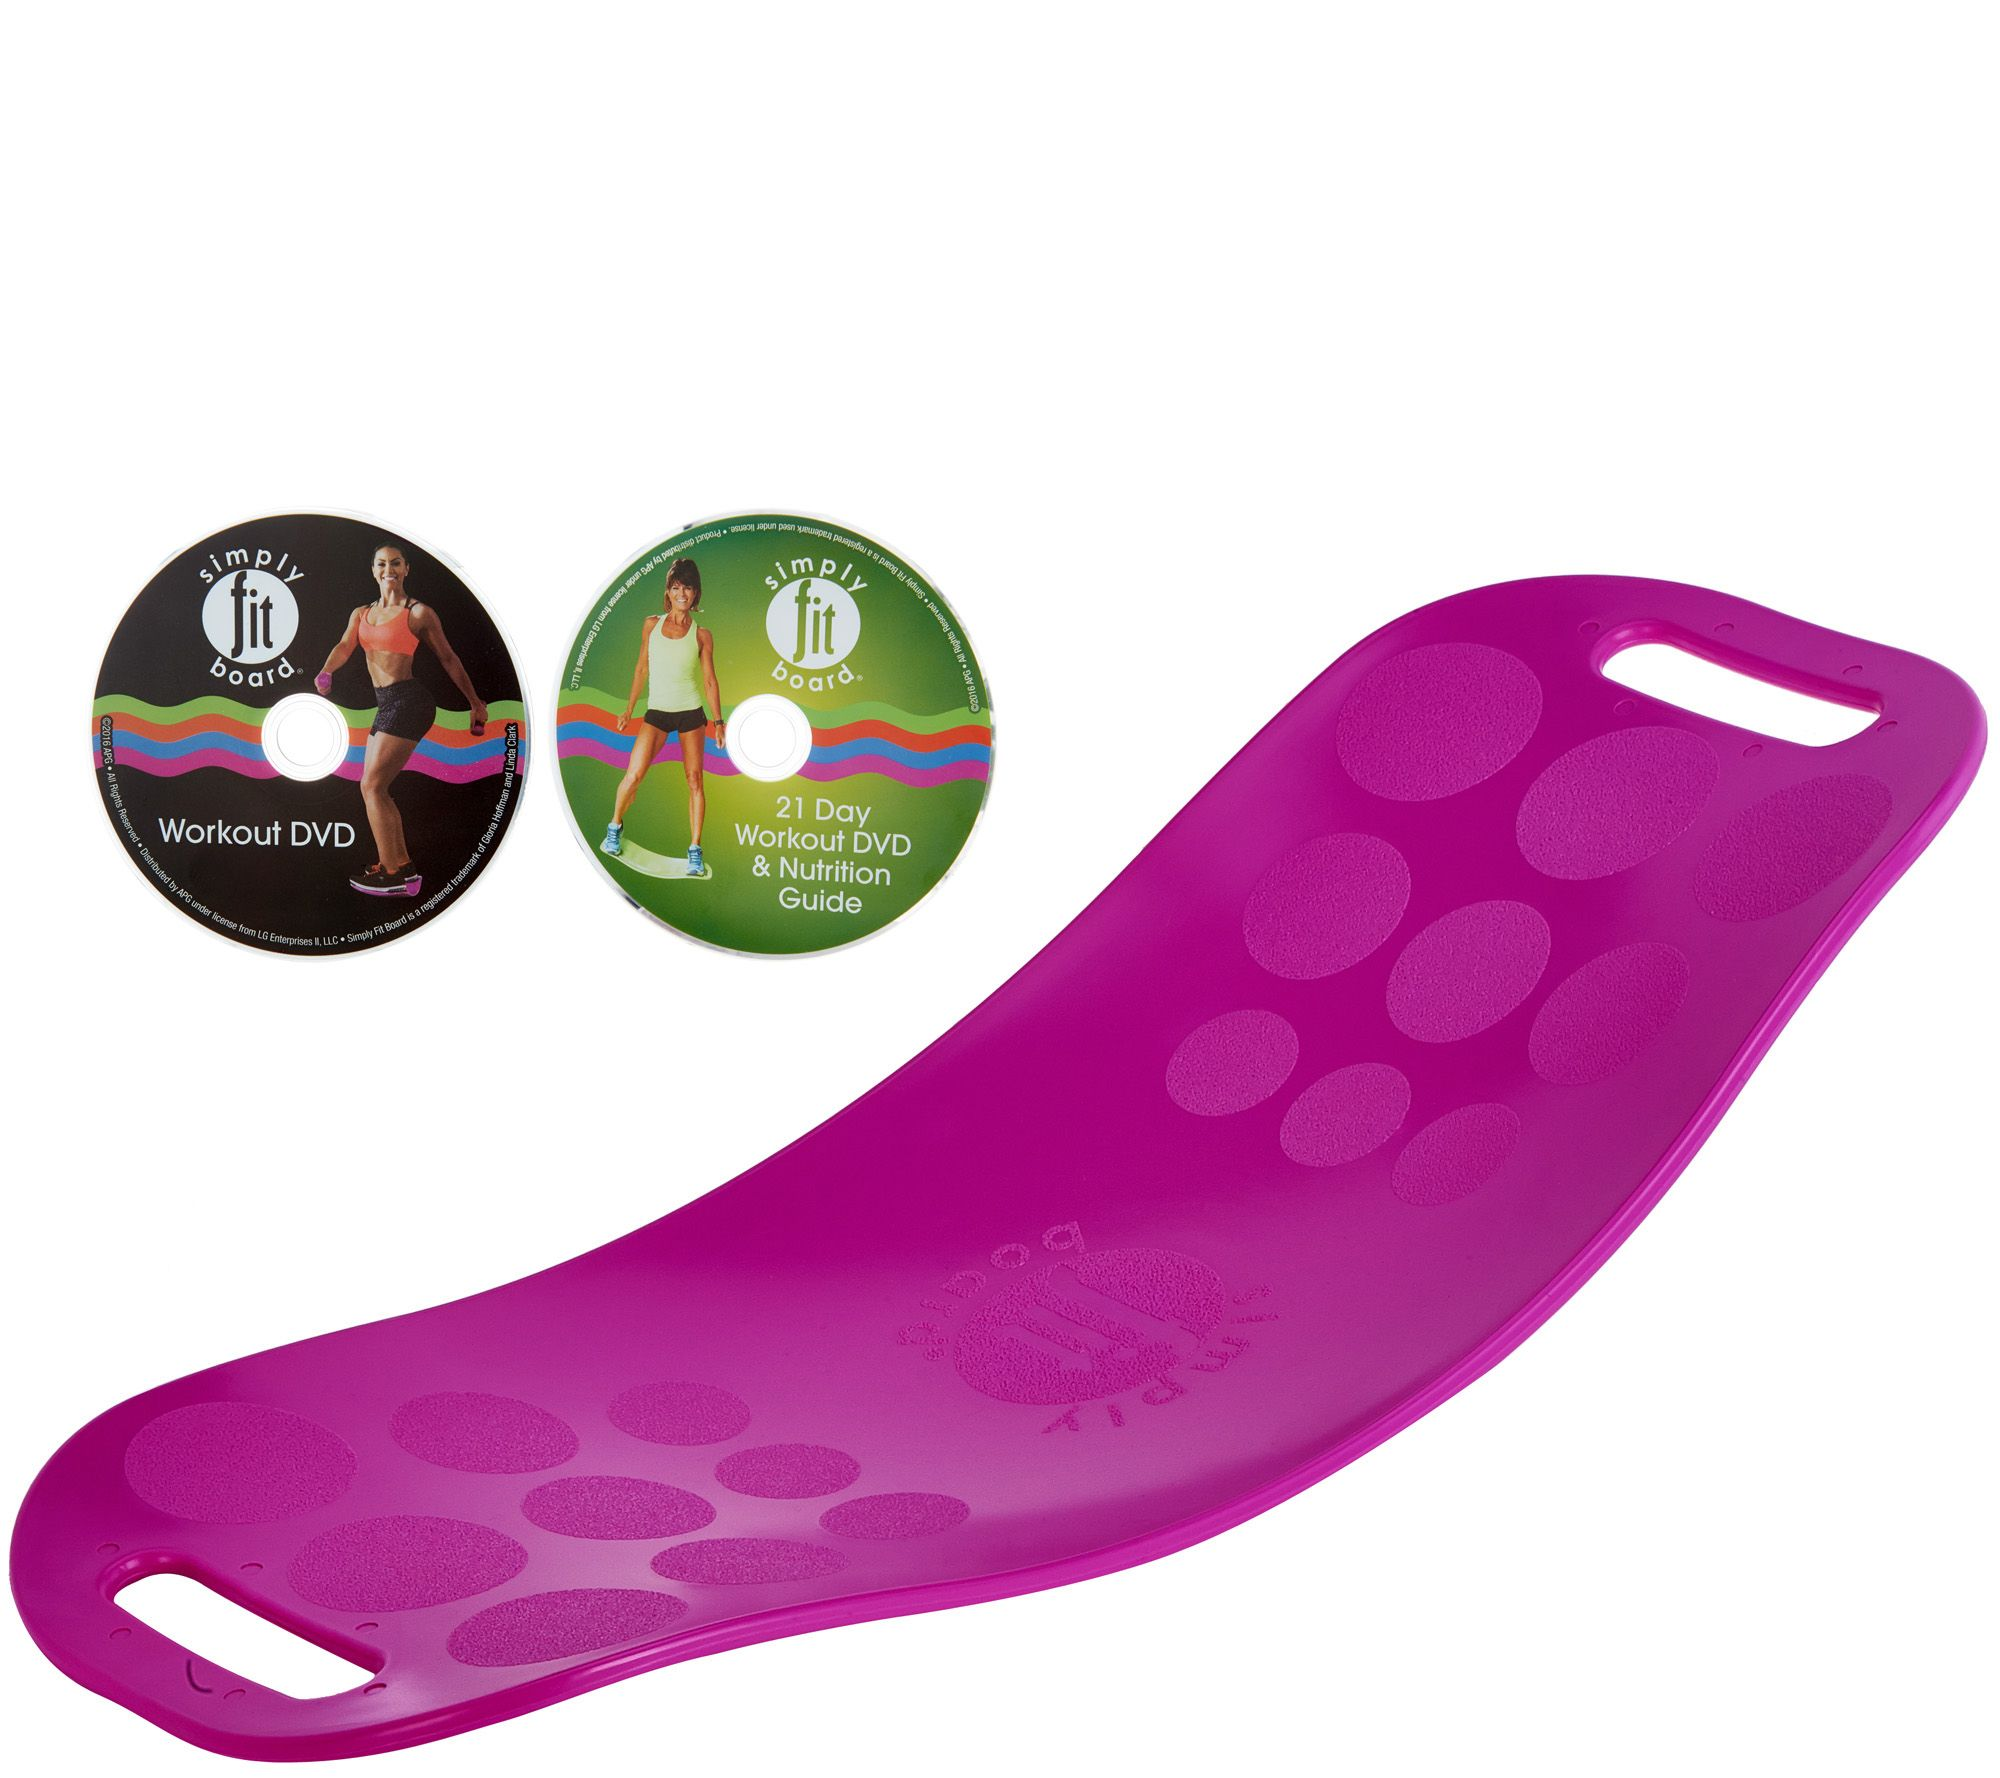 Blue apron qvc - Simply Fit Core Workout Board With 2 Dvd S By Lori Greiner H211192